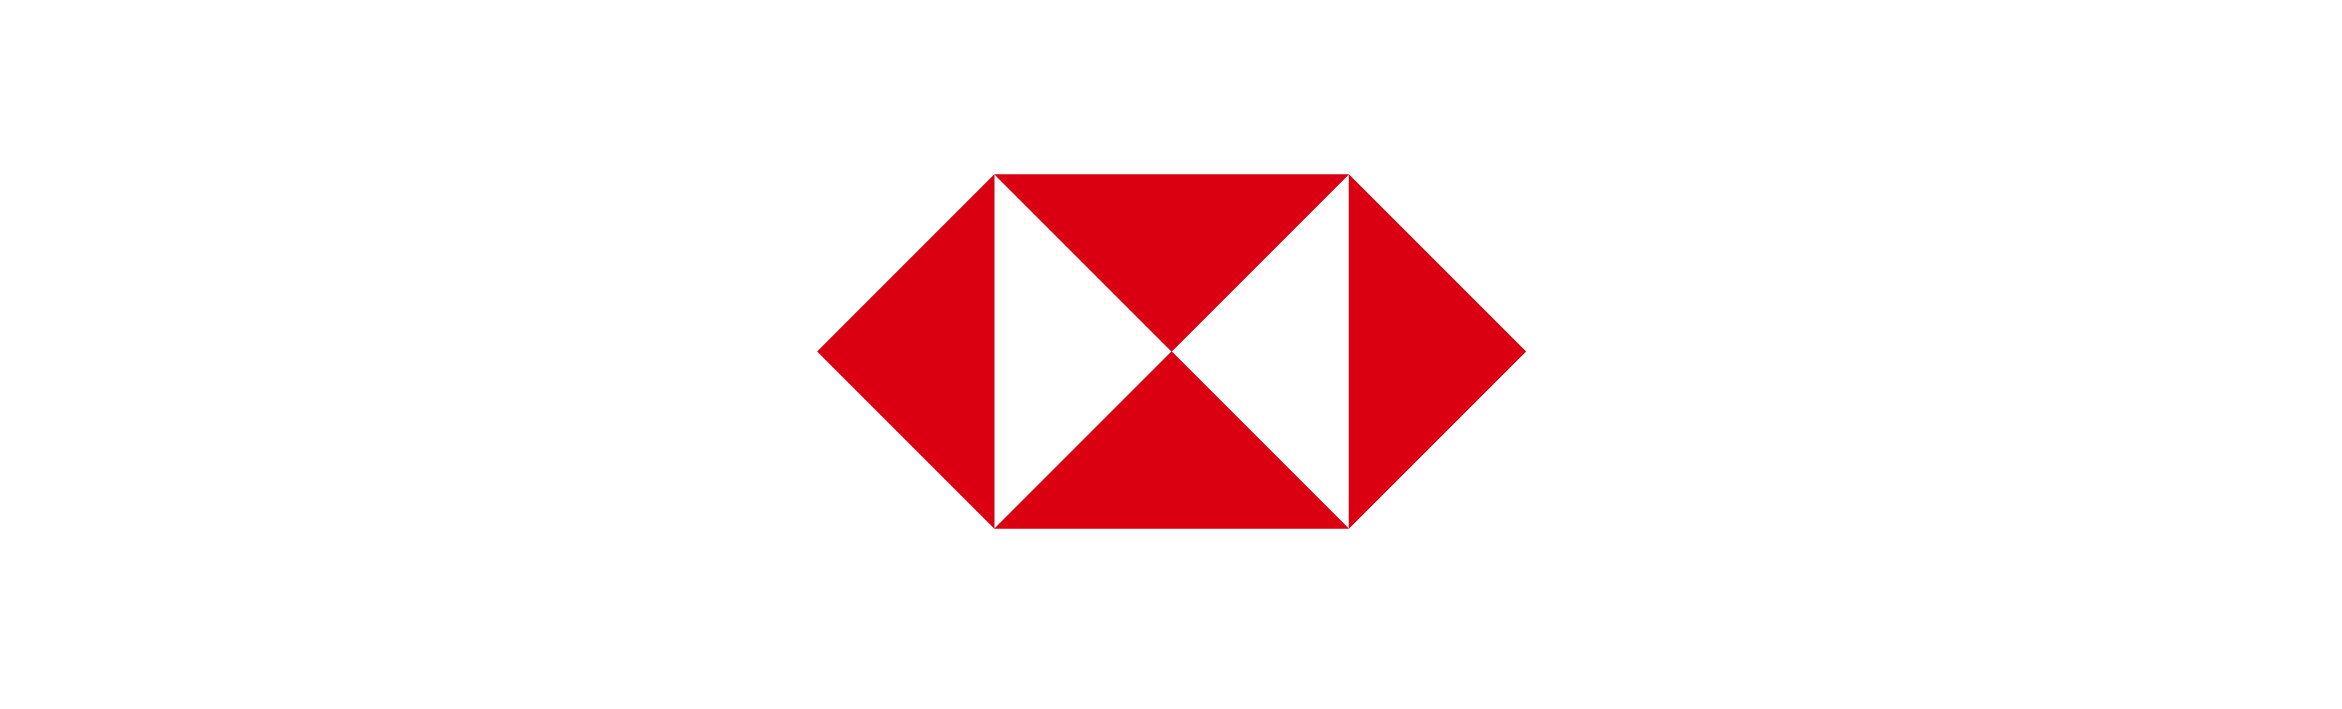 HSBC Private Banking logo